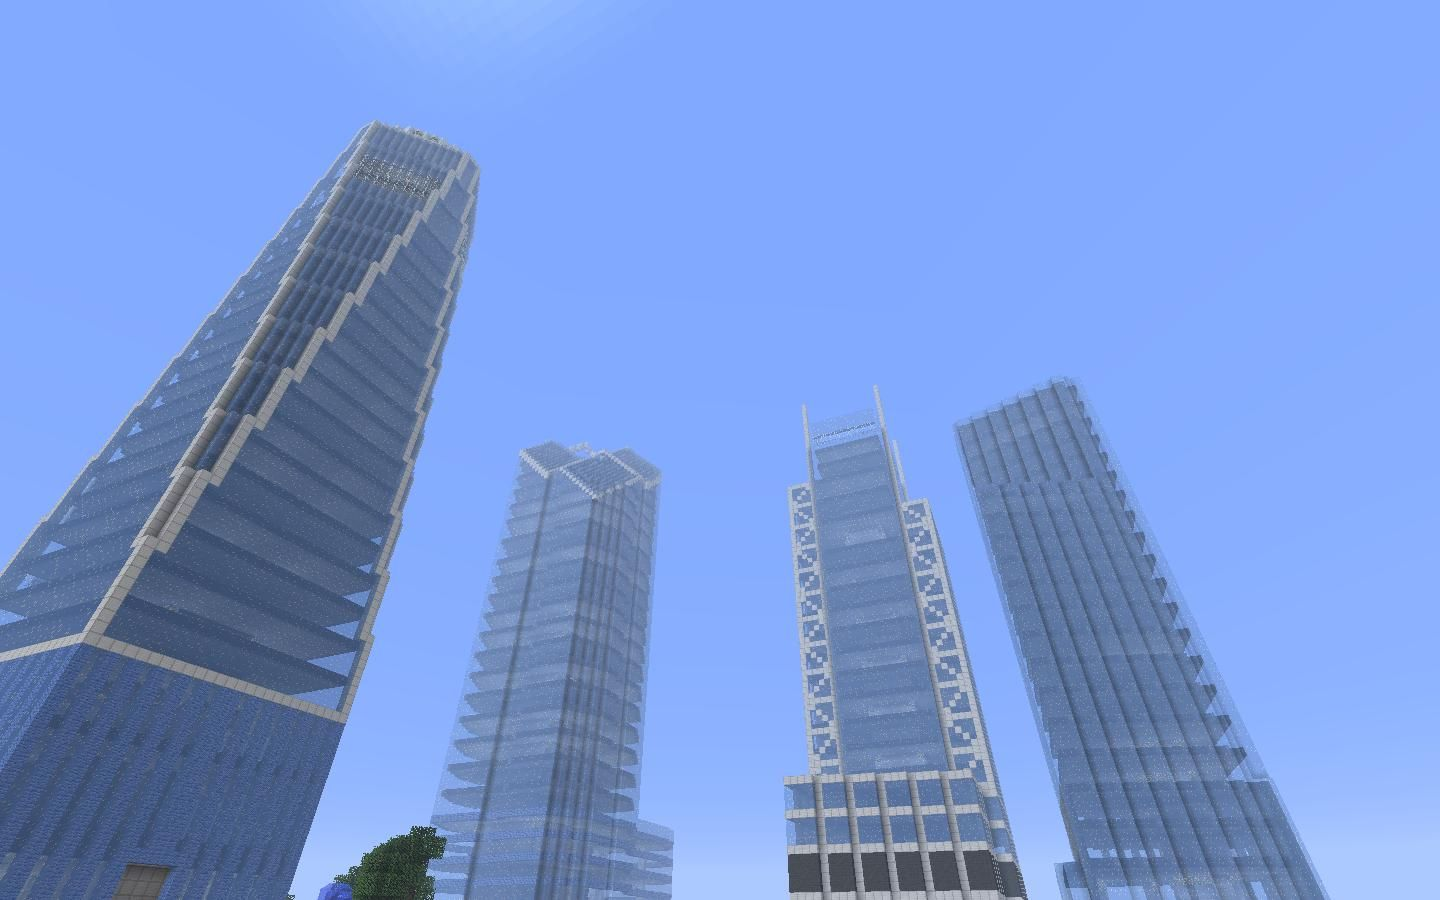 Minecraft shopping mall map download google search minecraft explore minecraft plans one world trade center and more minecraft shopping mall map download google search gumiabroncs Images